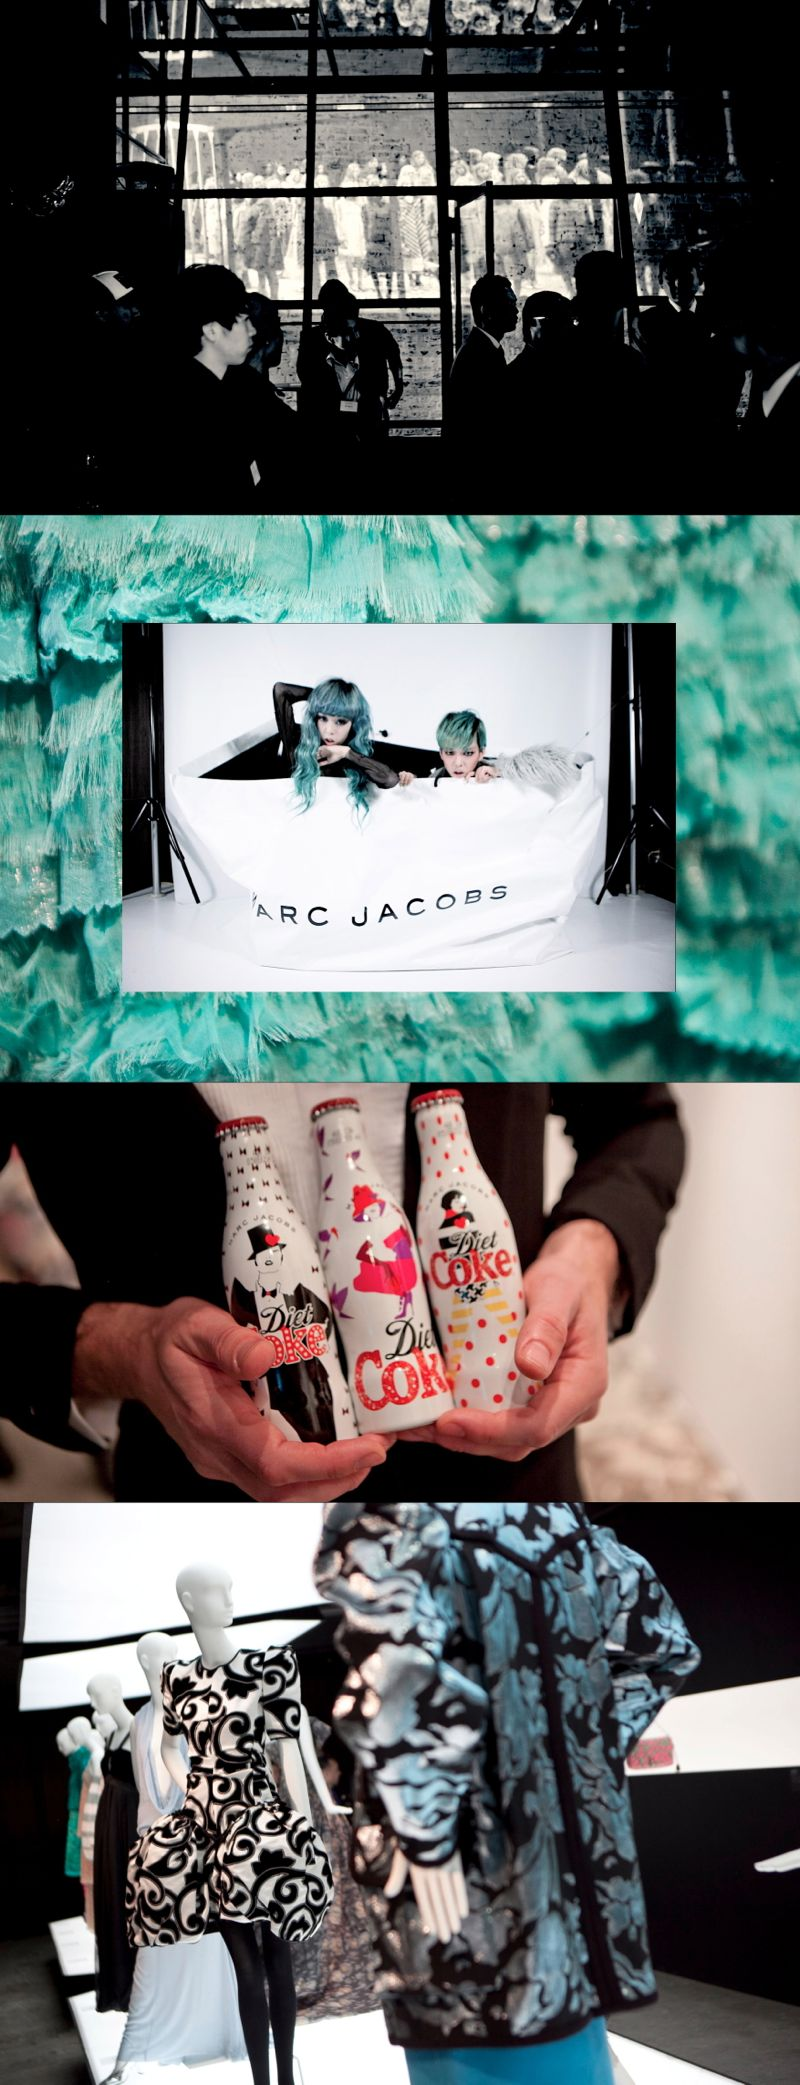 Marc Jacobs Iconic Showpieces Exhibition IDOL Aoyama Tokyo Dandy3